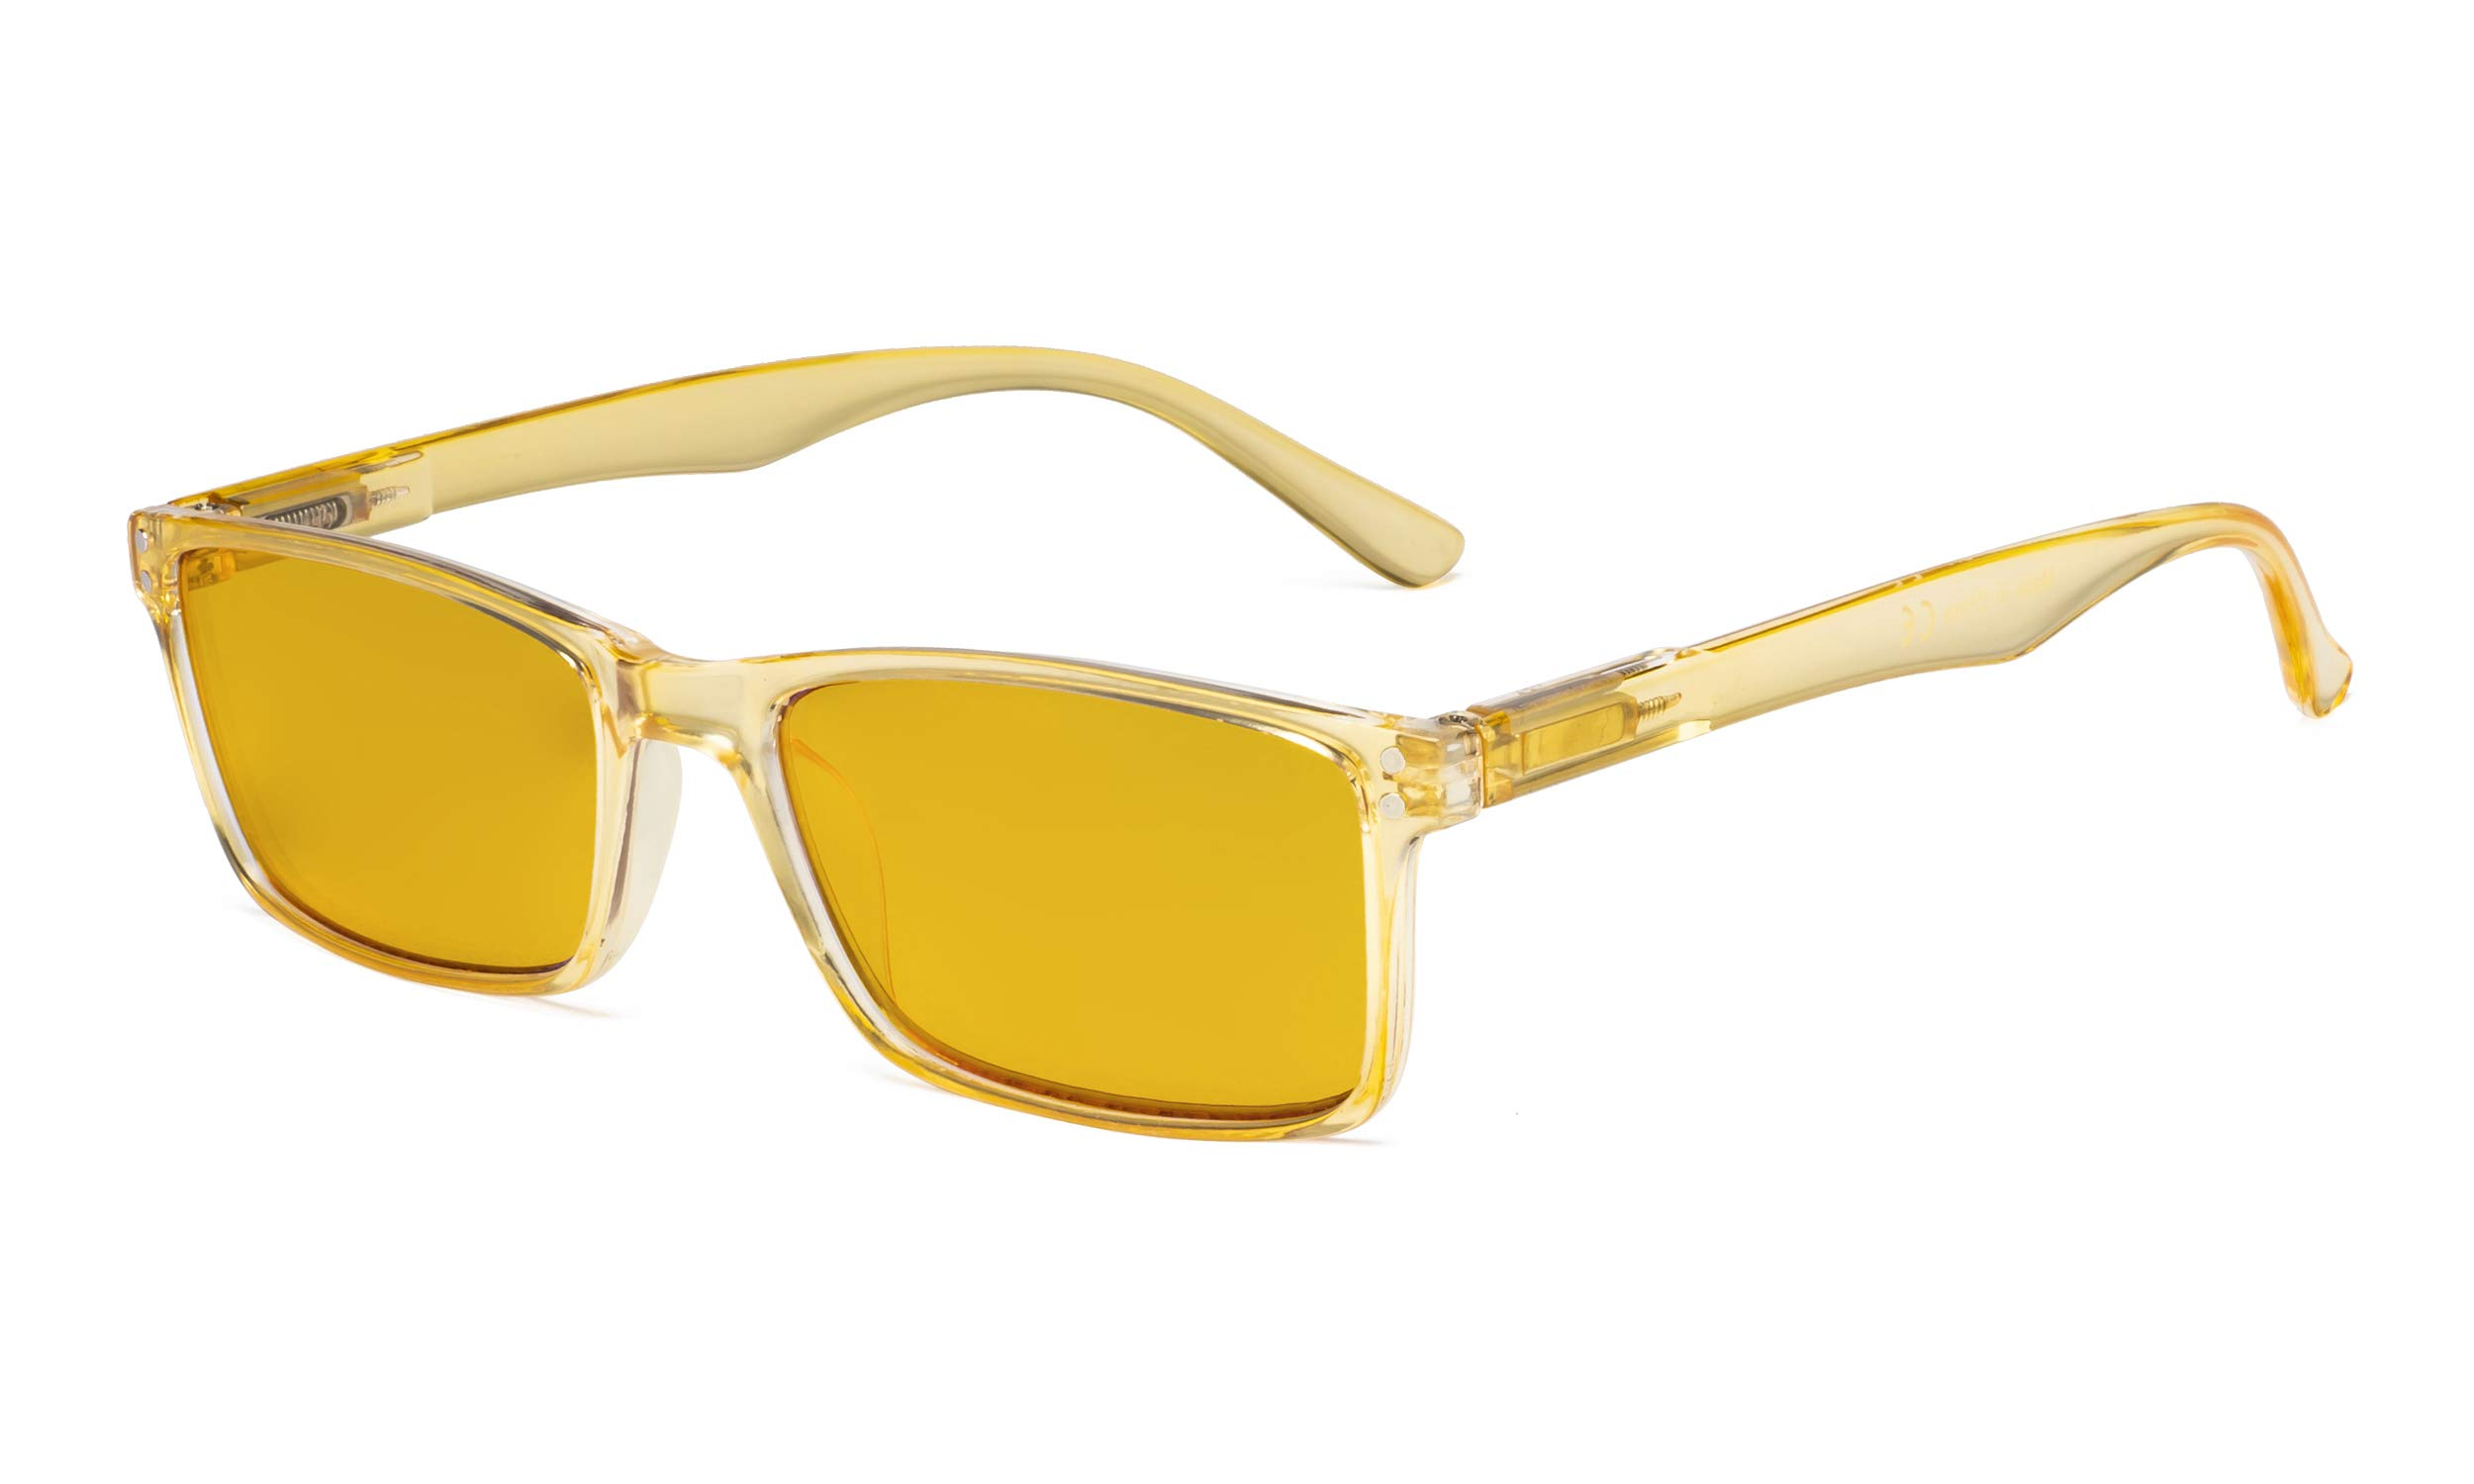 Eyekepper Computer Glasses - Blue Light Blocking Readers with Amber Tinted Filter Lens - Stylish Reading Glasses - Yellow +1.50